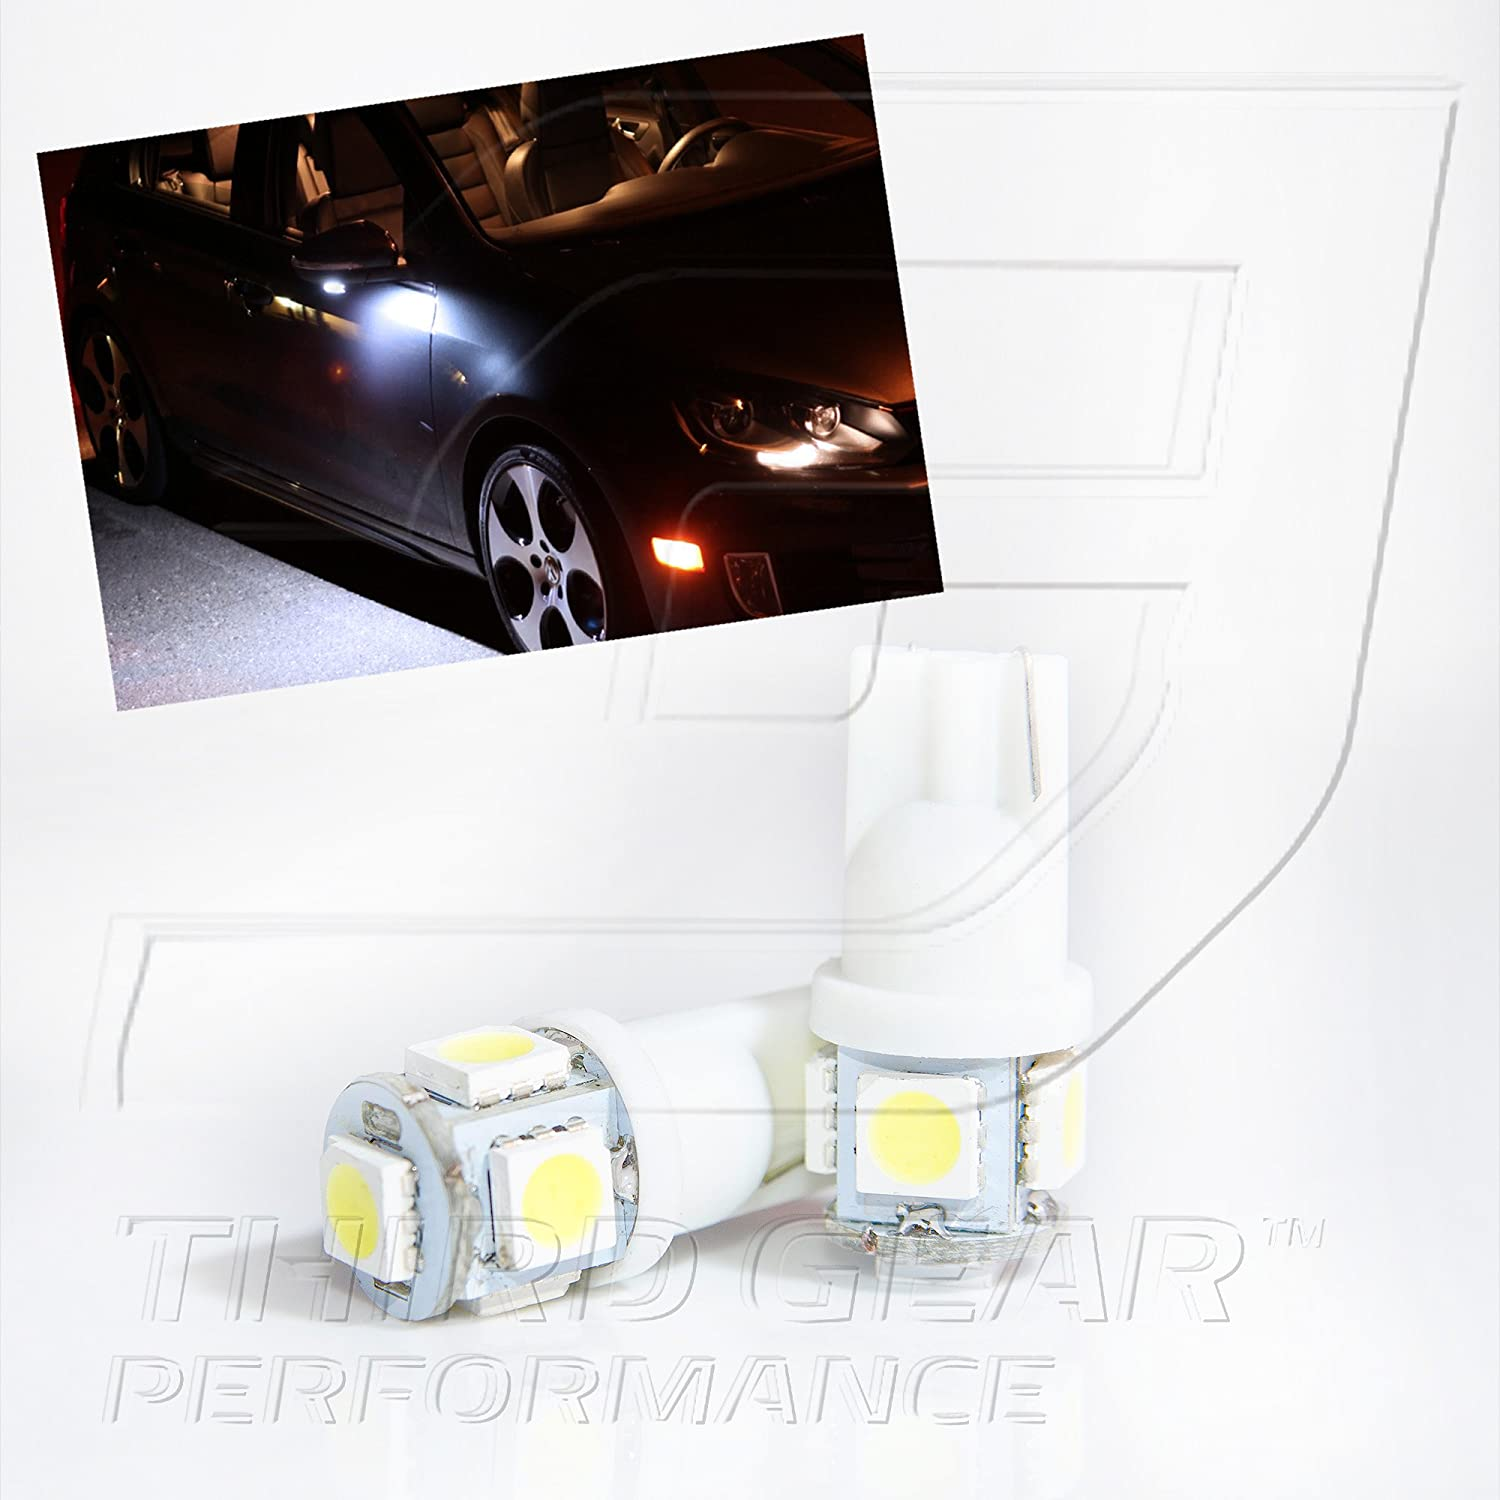 TGP T10 White 5 LED SMD Wedge 5050 Under Puddle Light Bulbs Pair 2006-2012 Lexus IS250 IS350 Third Gear Performance